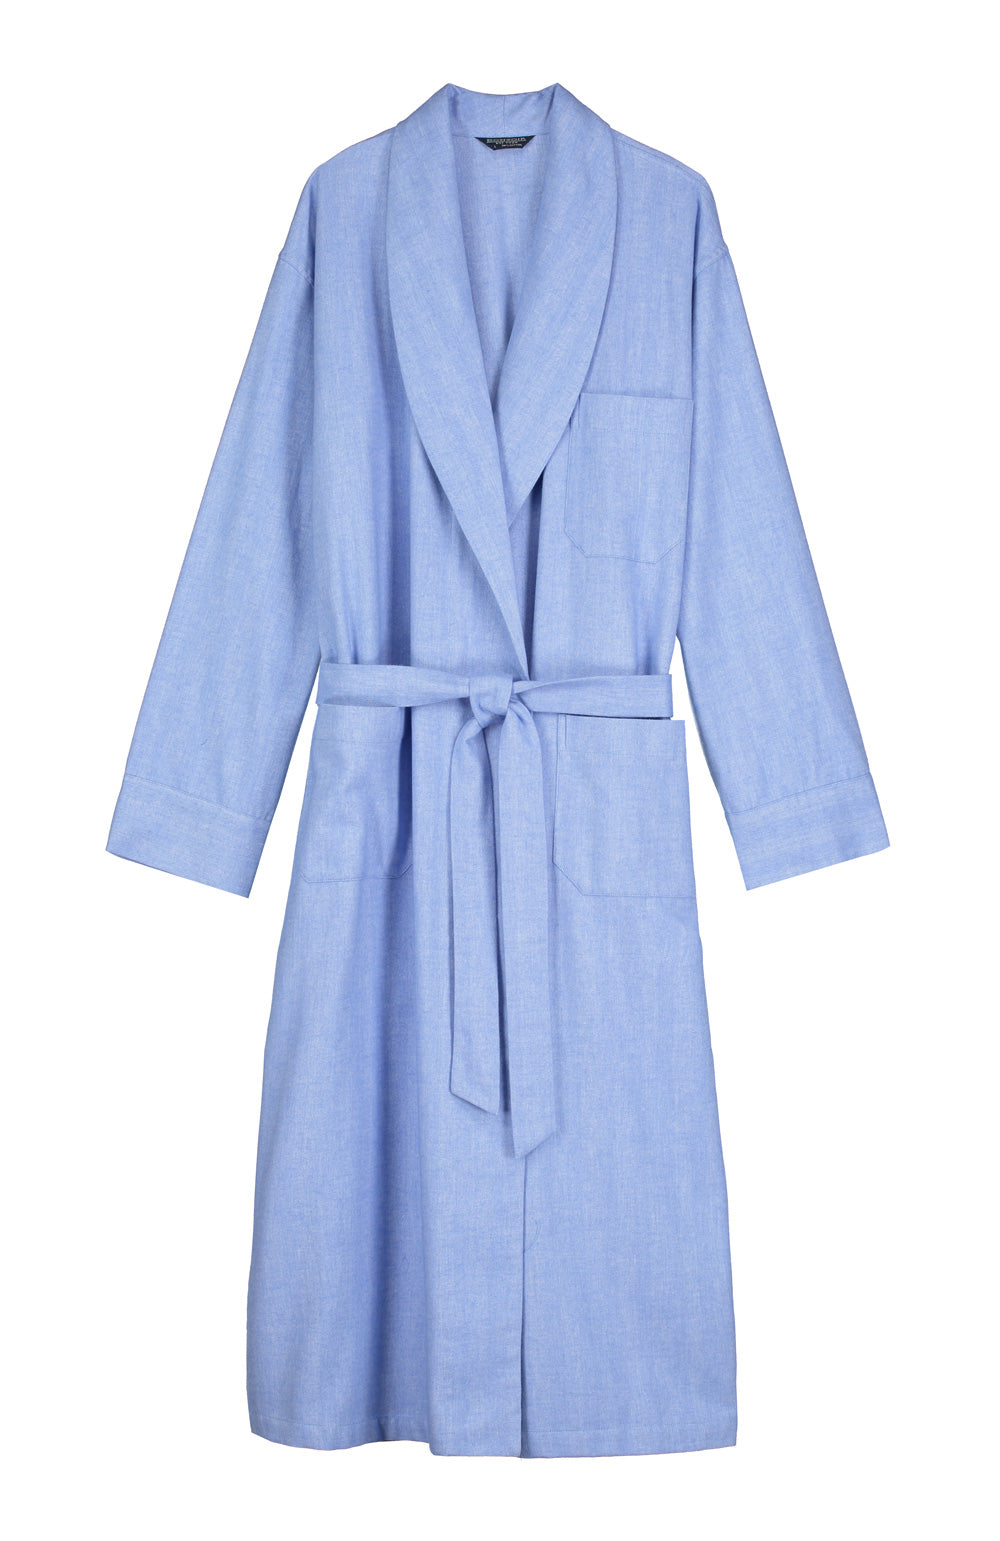 Brushed Cotton Gown (jmdg) - Sky